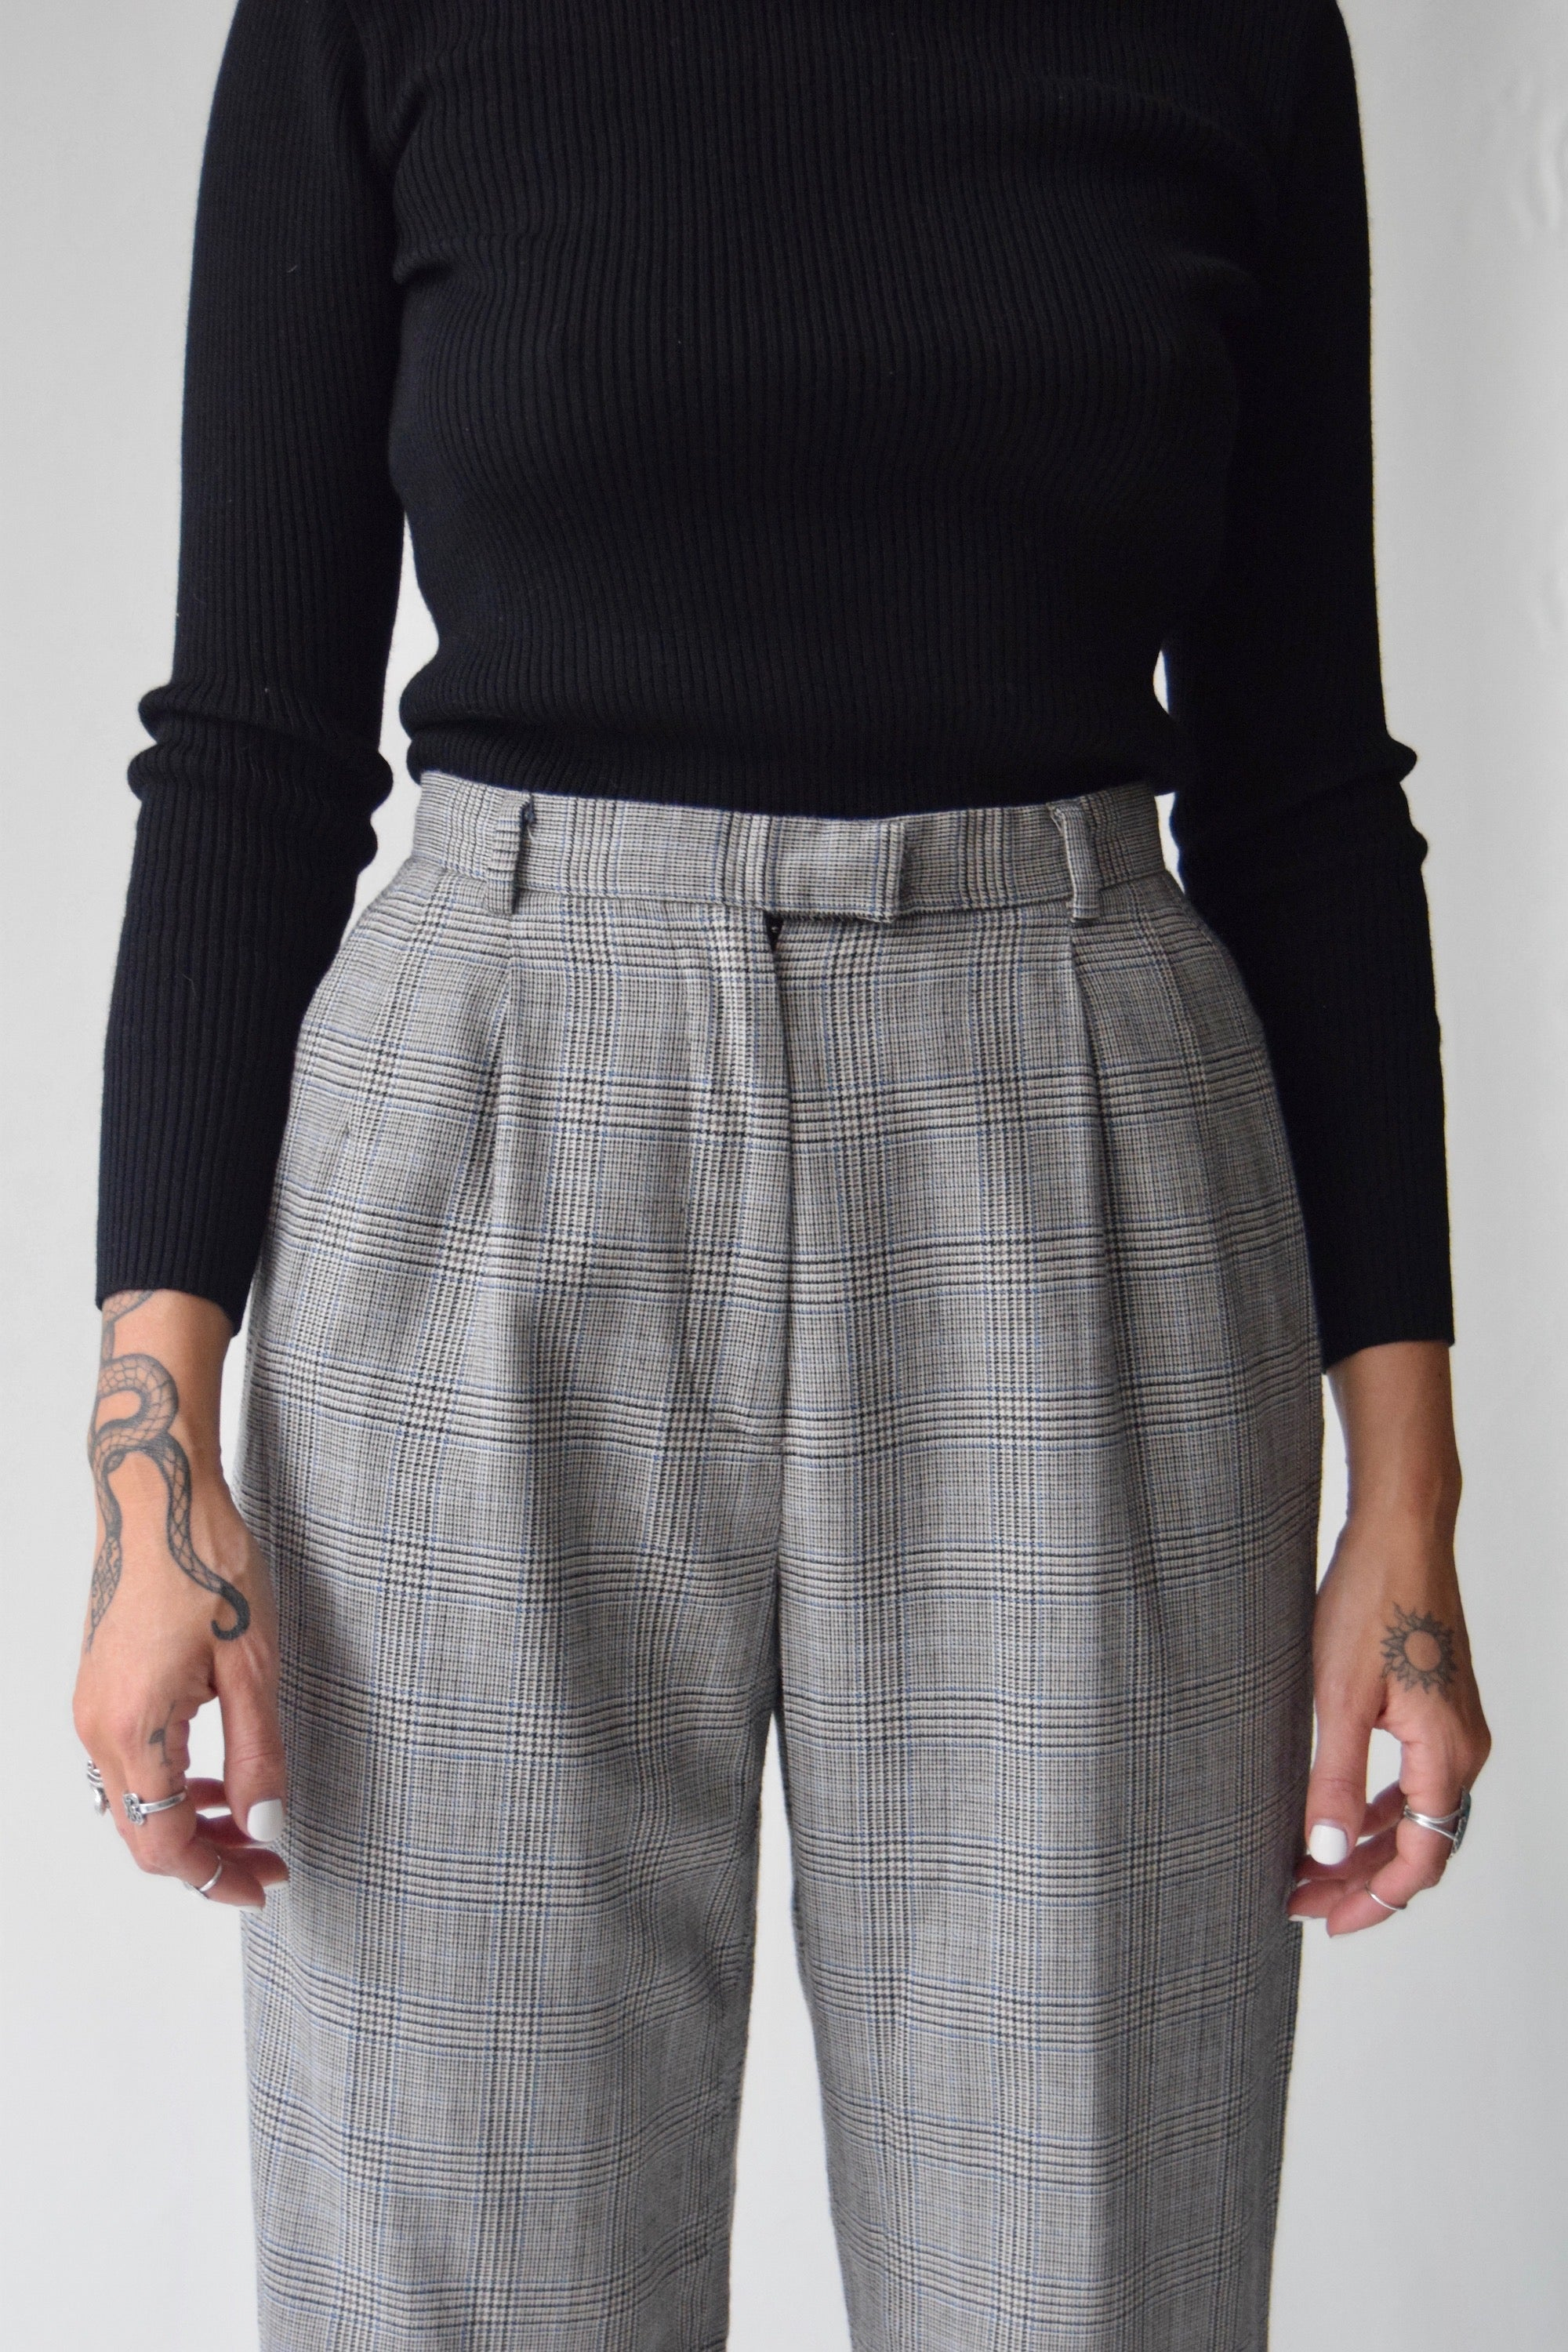 Black and Ivory Plaid Pure Wool Trousers